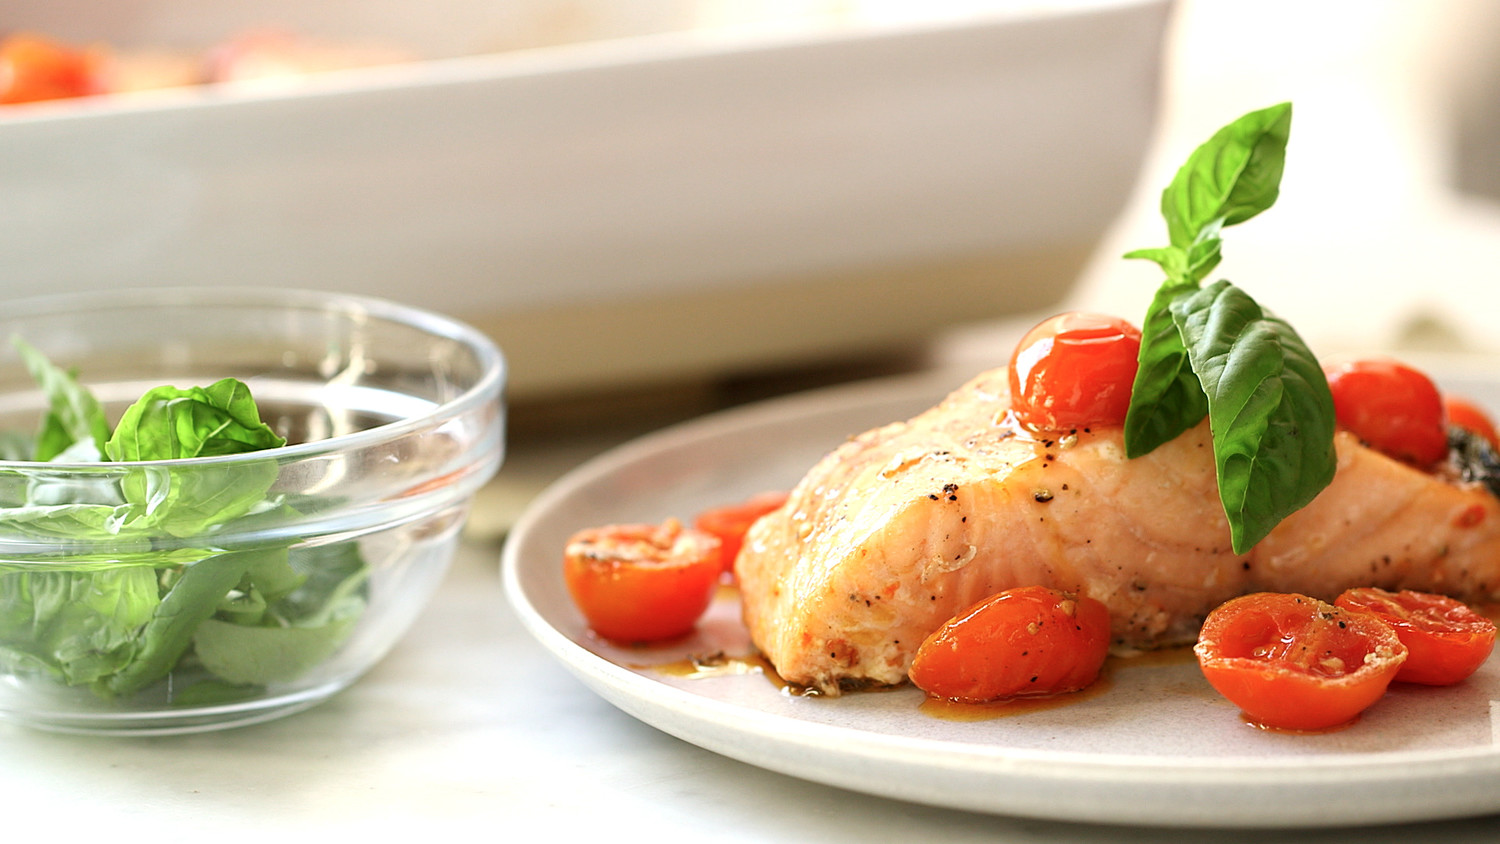 Video: Slow-Baked Salmon and Cherry Tomatoes | Martha Stewart